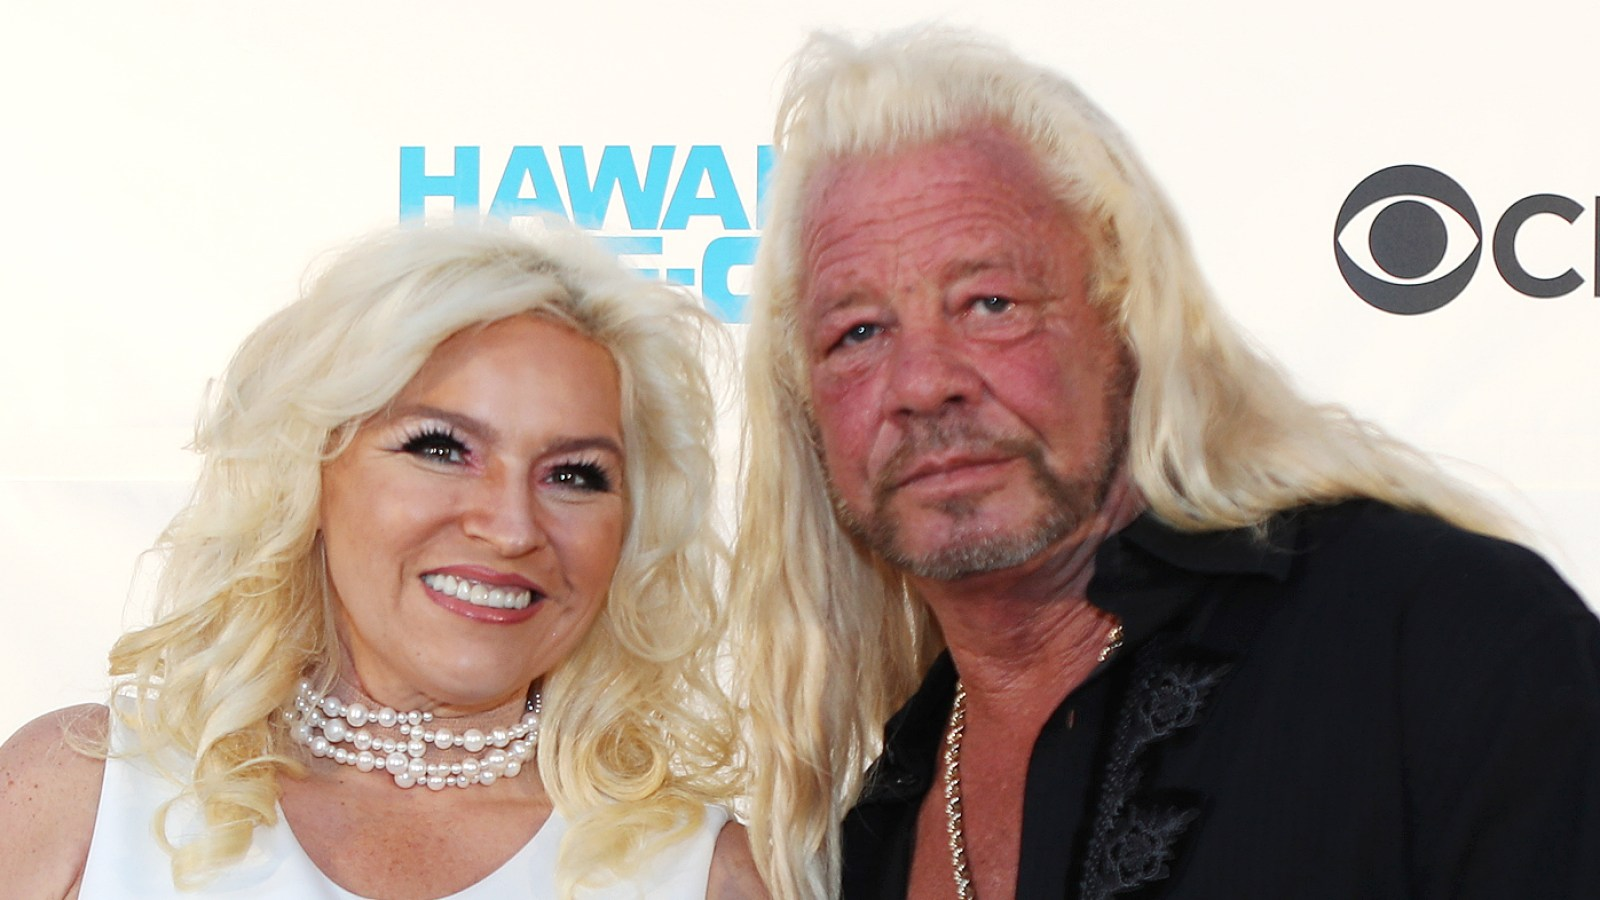 Dog the Bounty Hunter Shares When He'll Lay Wife Beth to Rest